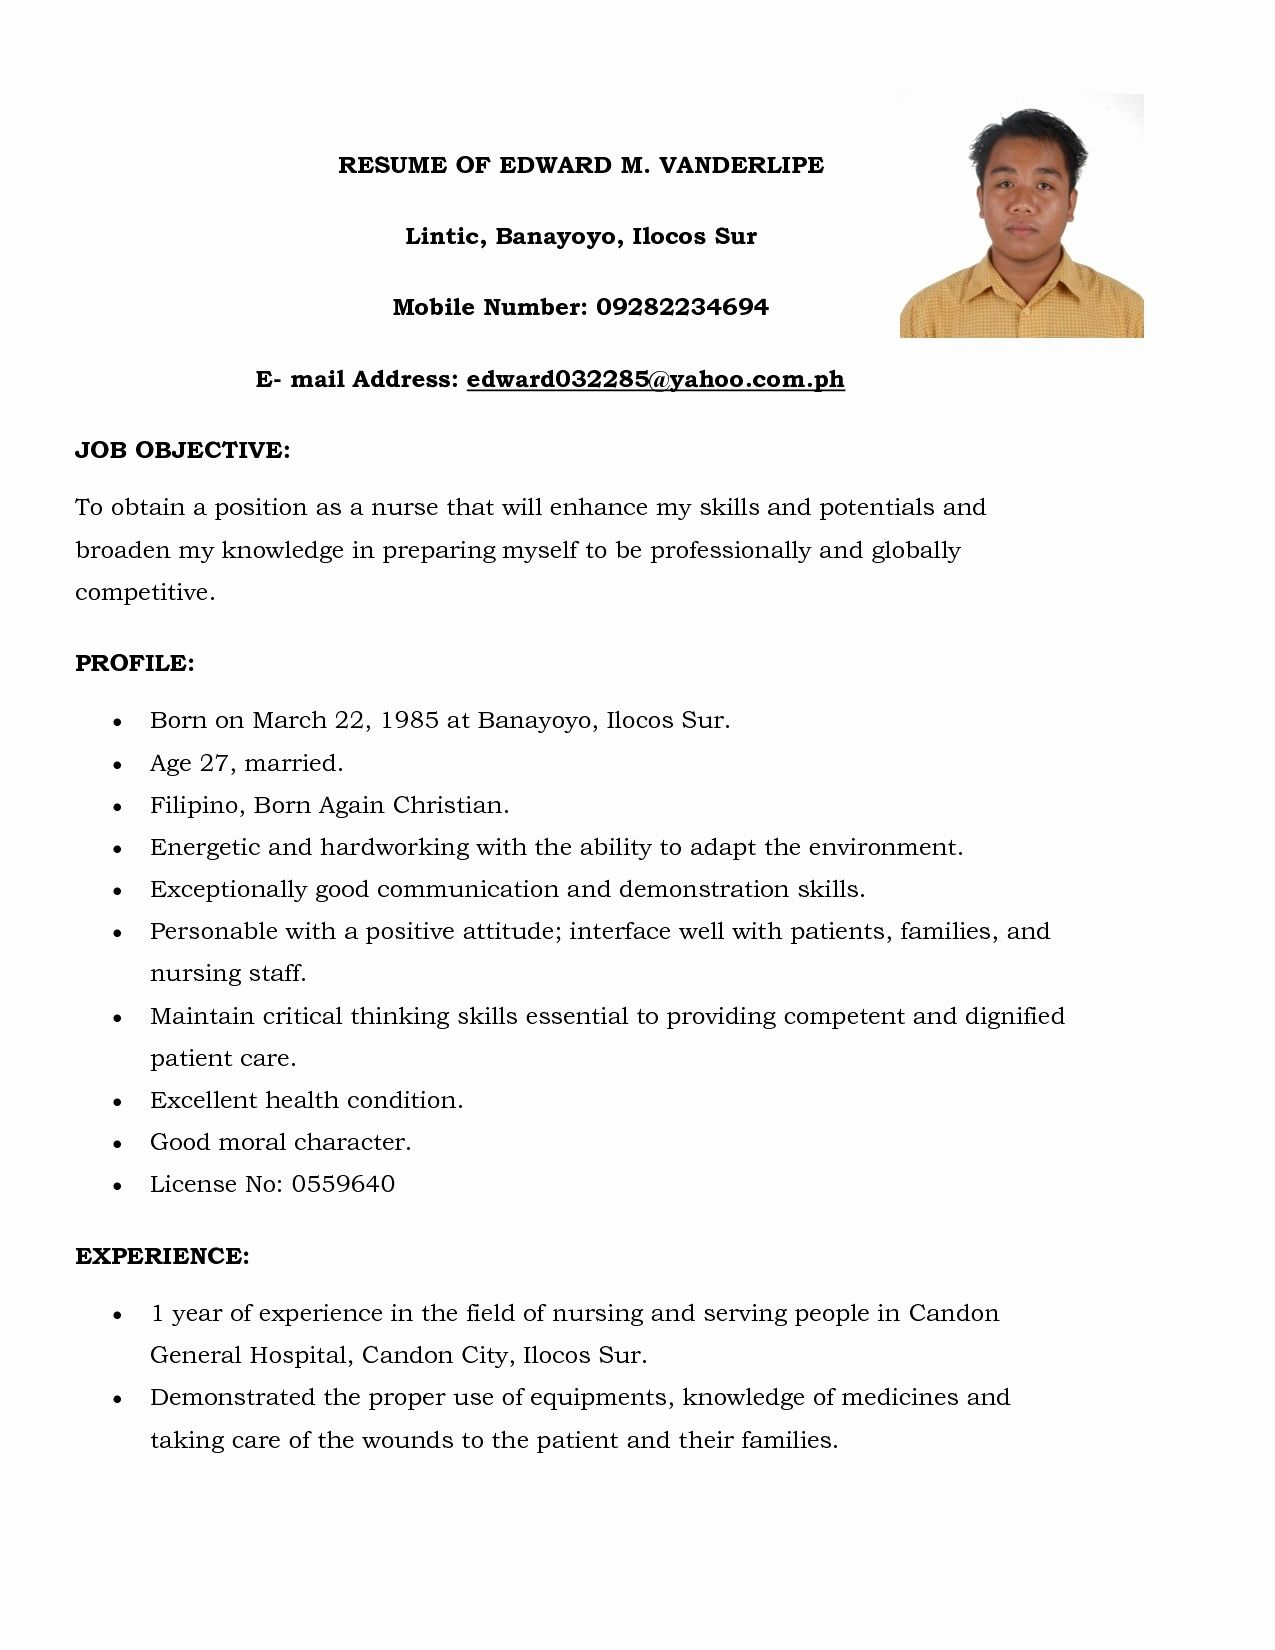 rn resume samples awesome sample nursing no experience examples 2012 inside sample resume for registered nurse with no experience